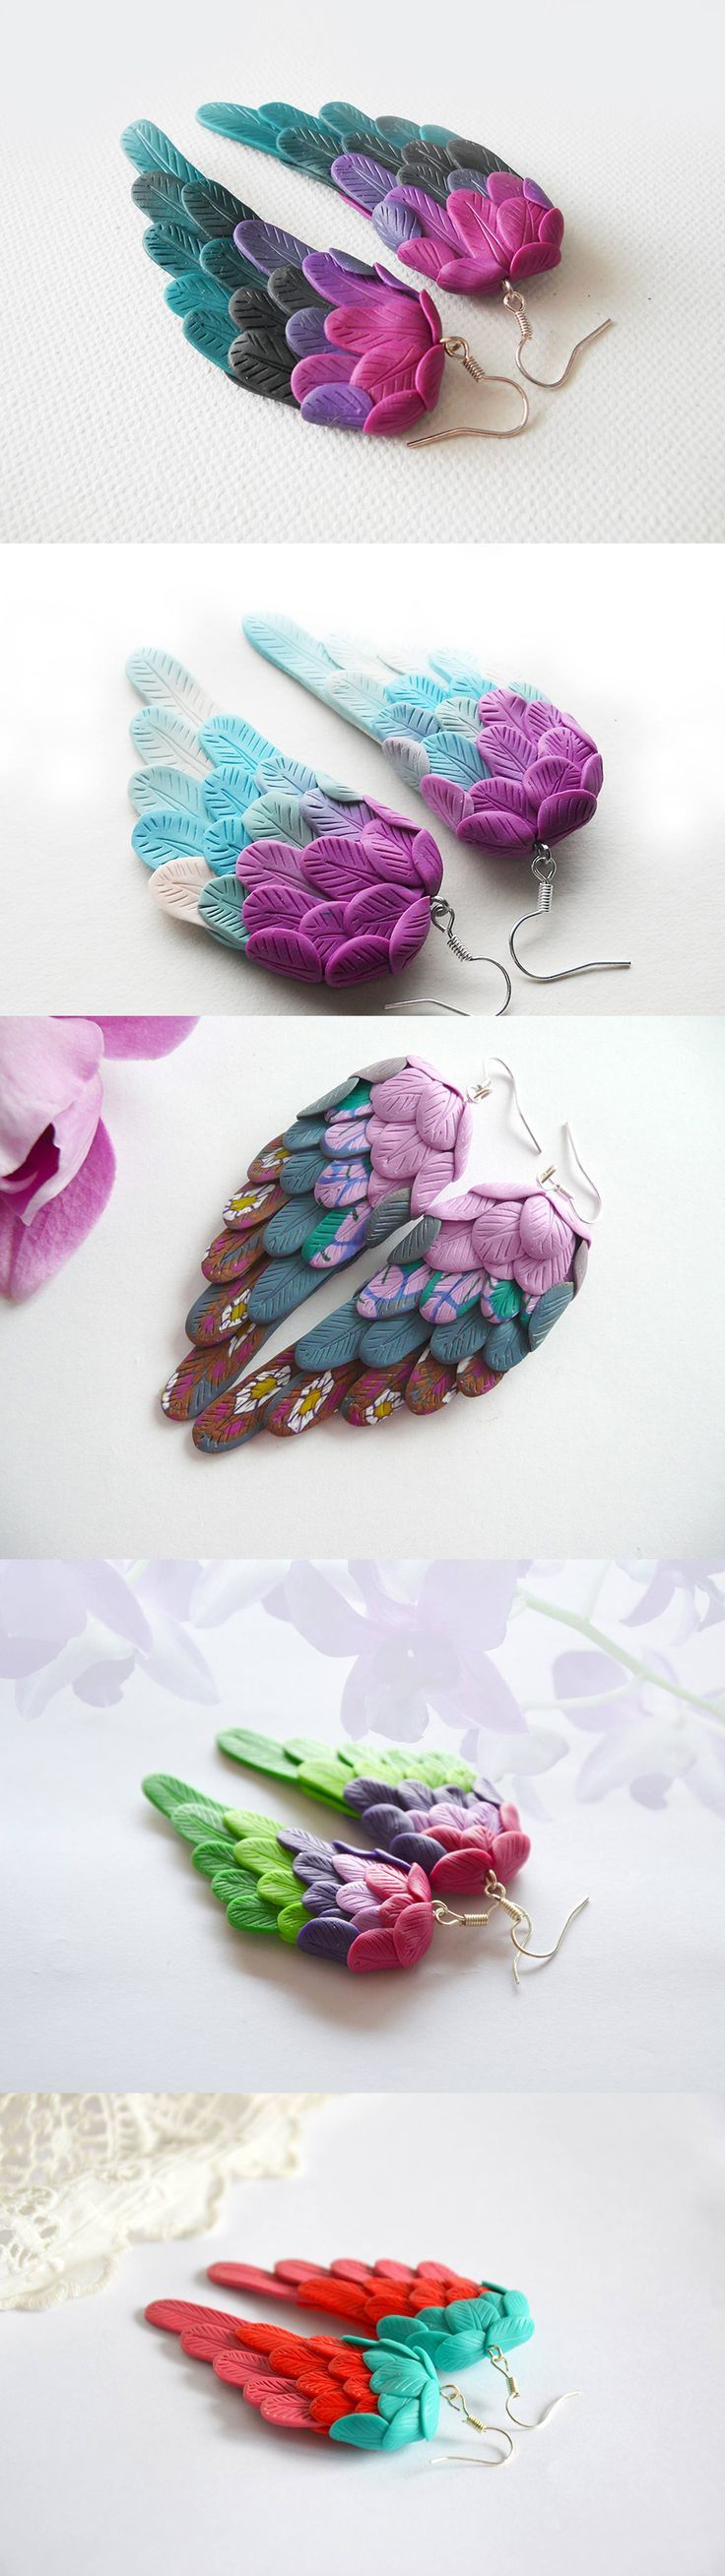 Polymer clay sculpted angel wing earrings - My Vian (scheduled via http://www.tailwindapp.com?utm_source=pinterest&utm_medium=twpin&utm_content=post54994880&utm_campaign=scheduler_attribution)